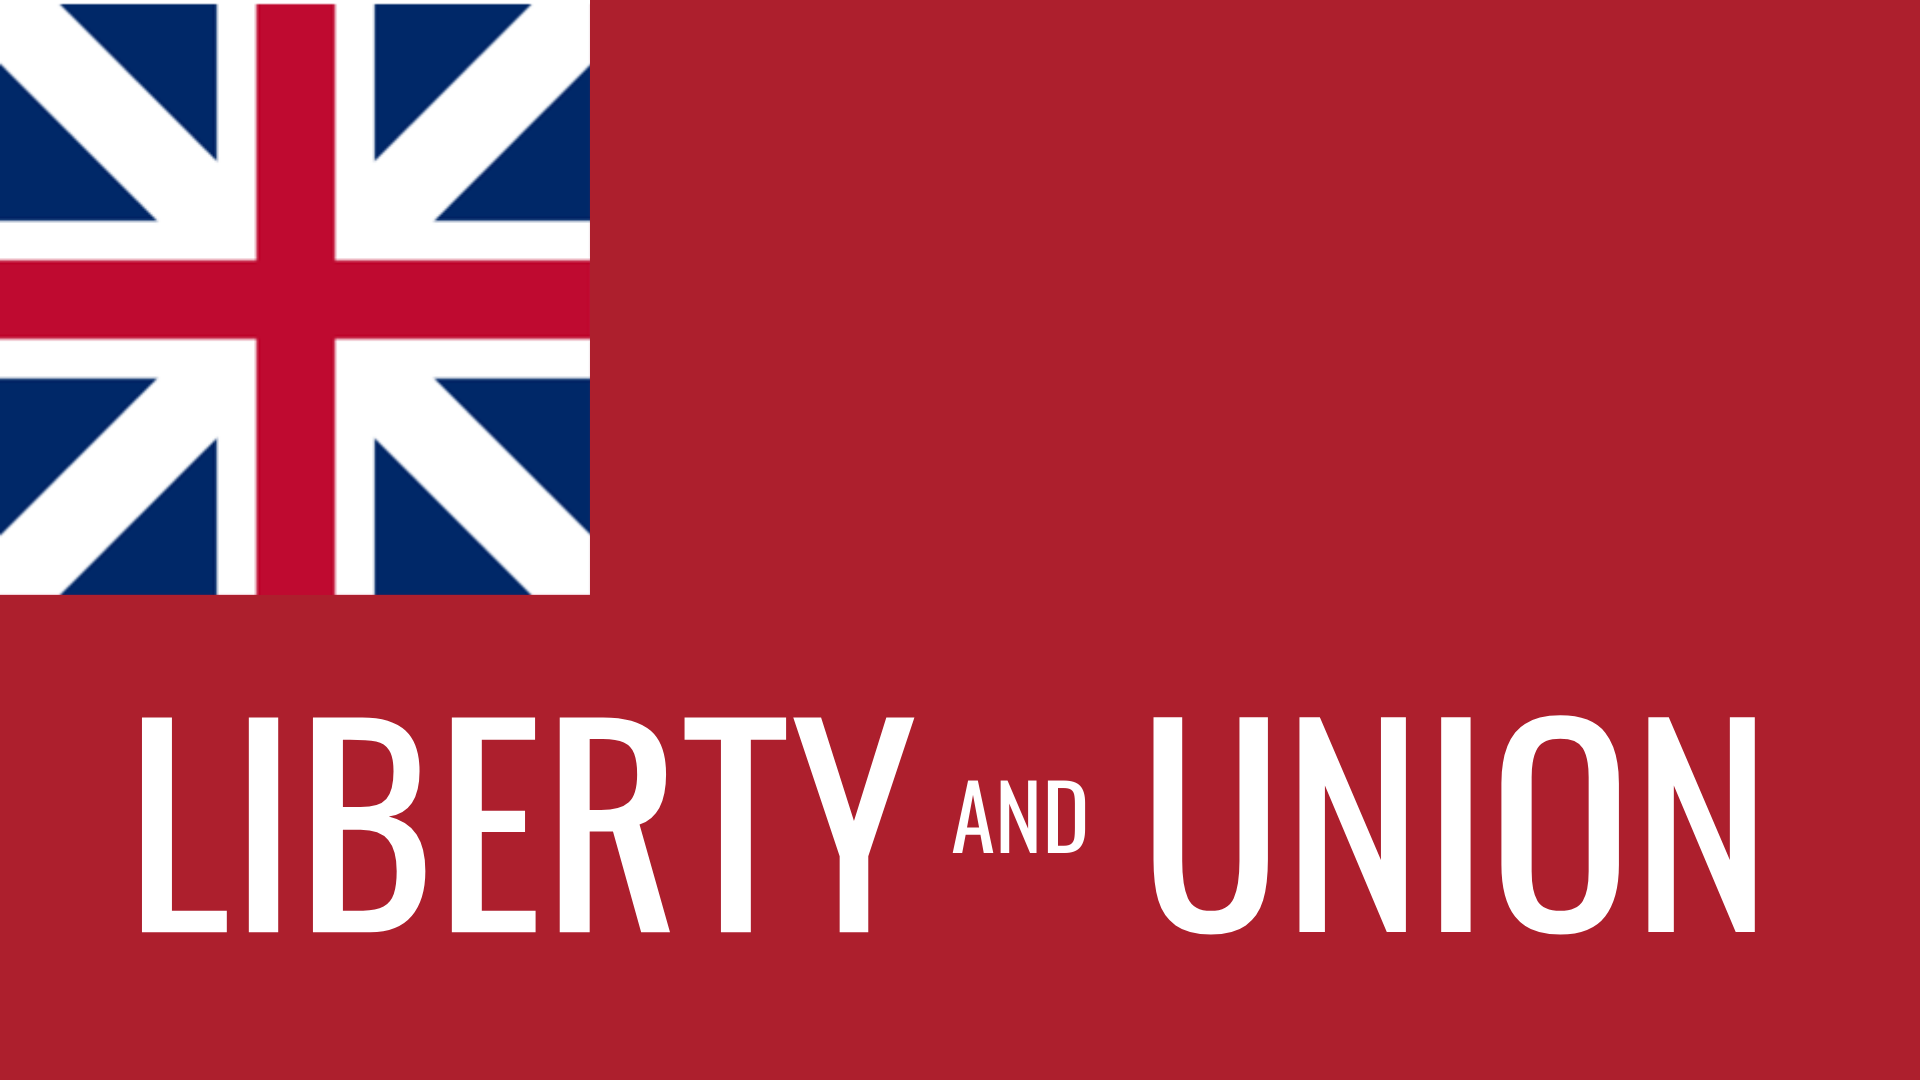 Liberty and Union Festival